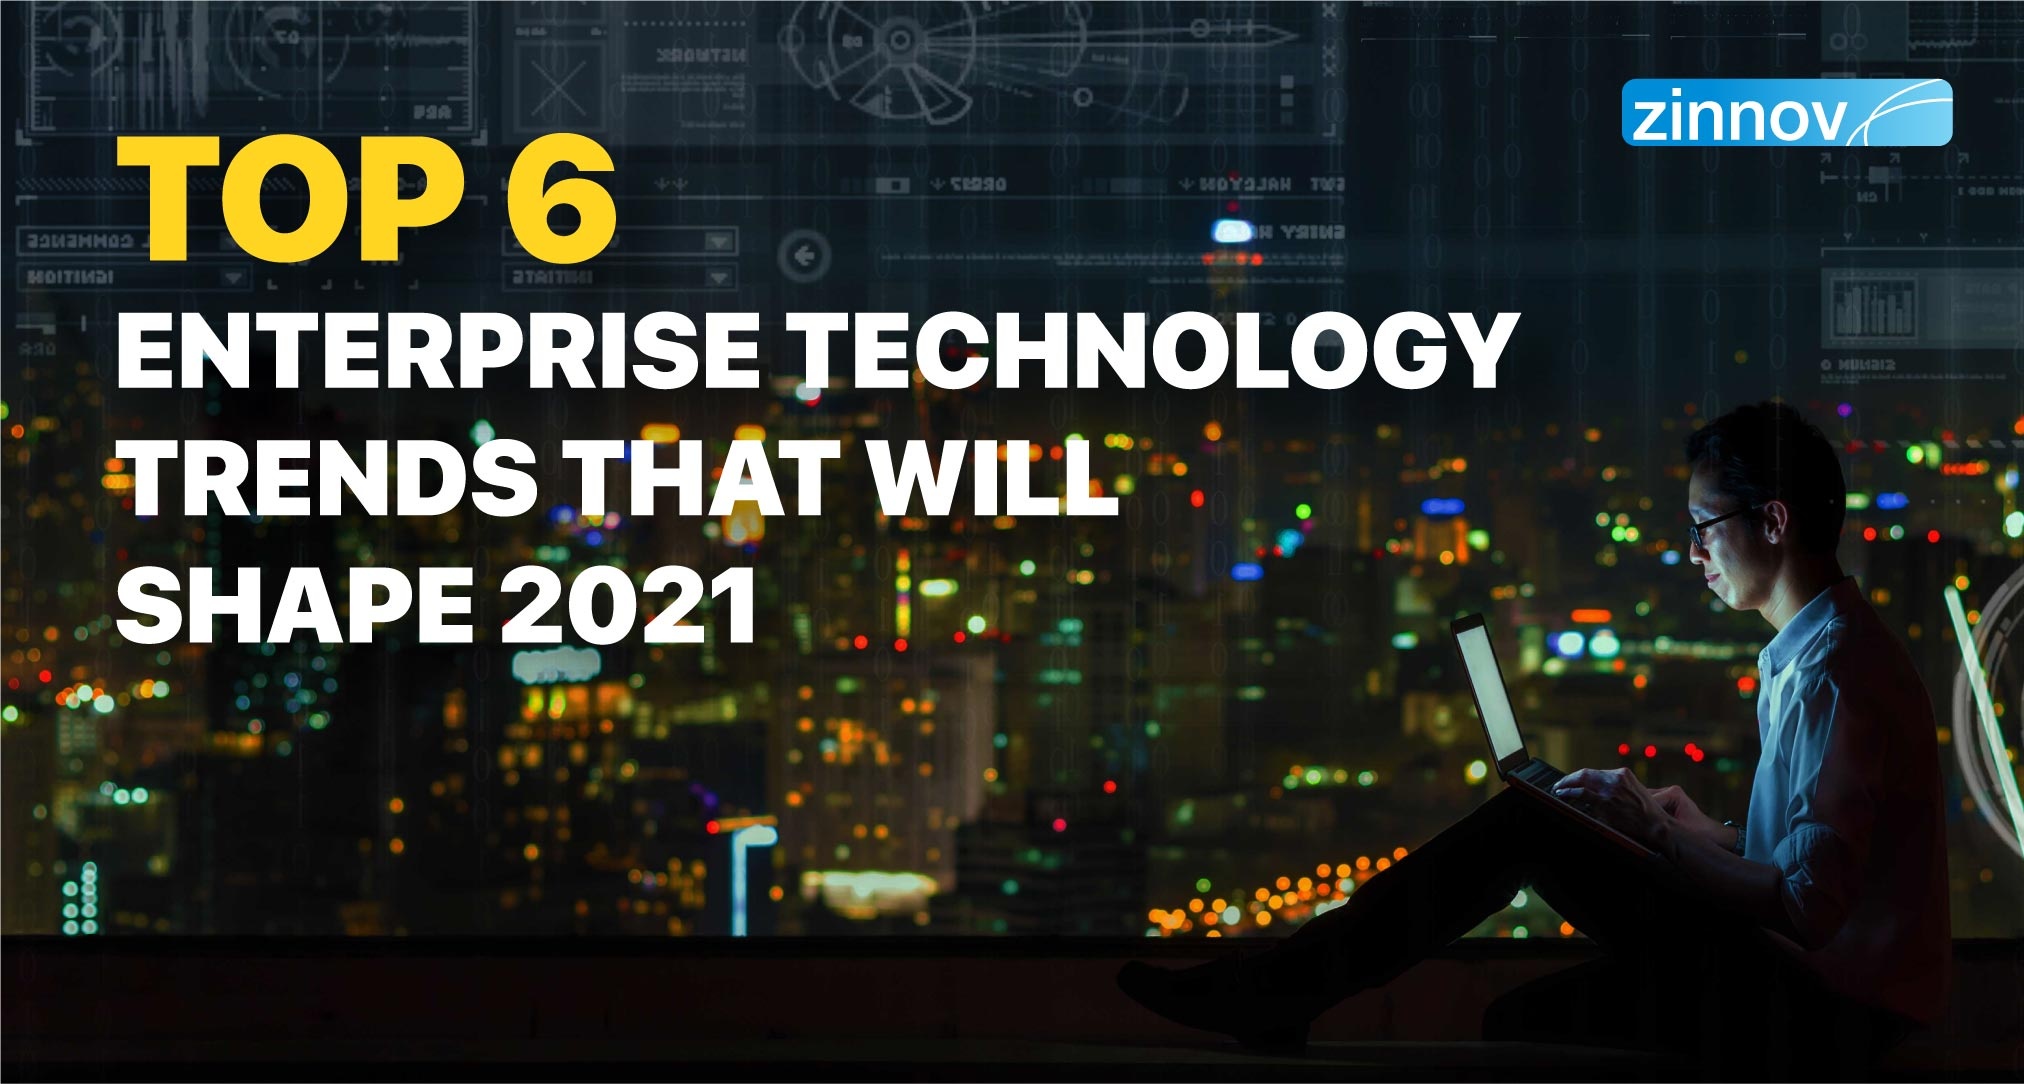 Enterprise Technology trends 2021